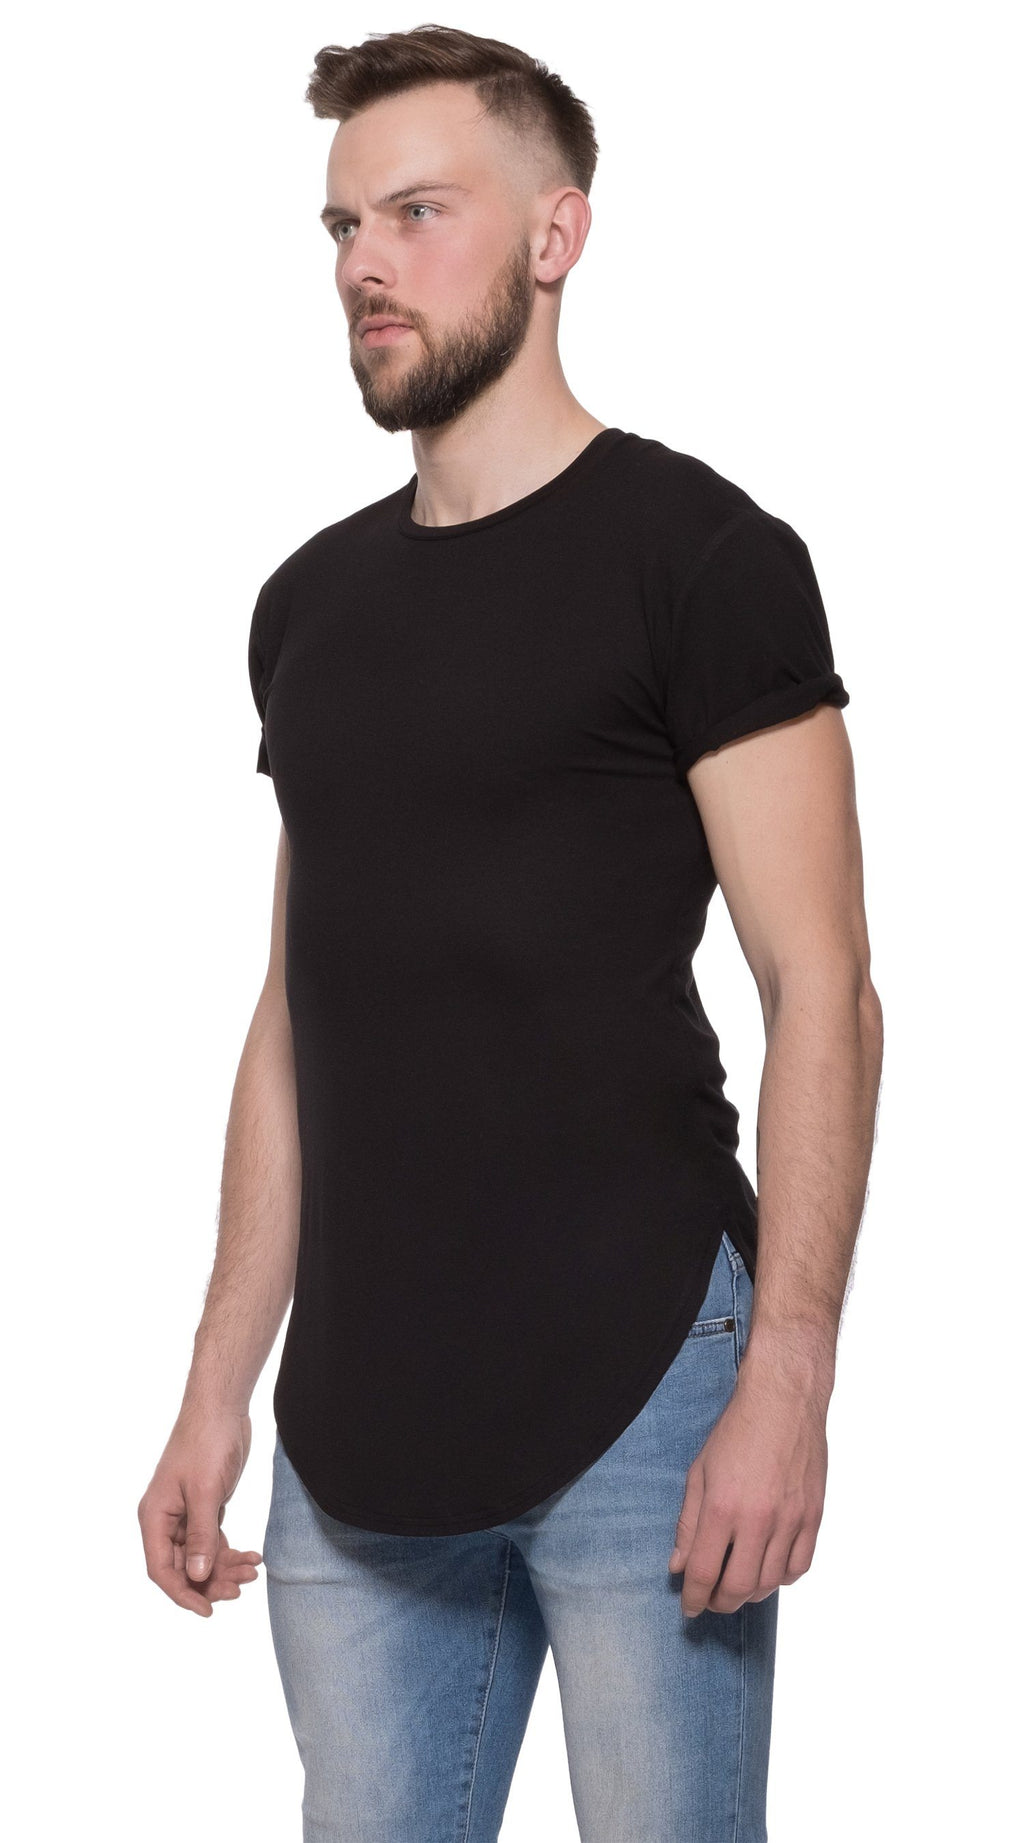 TheG Man Viscose Basic 1/2 Long Tee // black